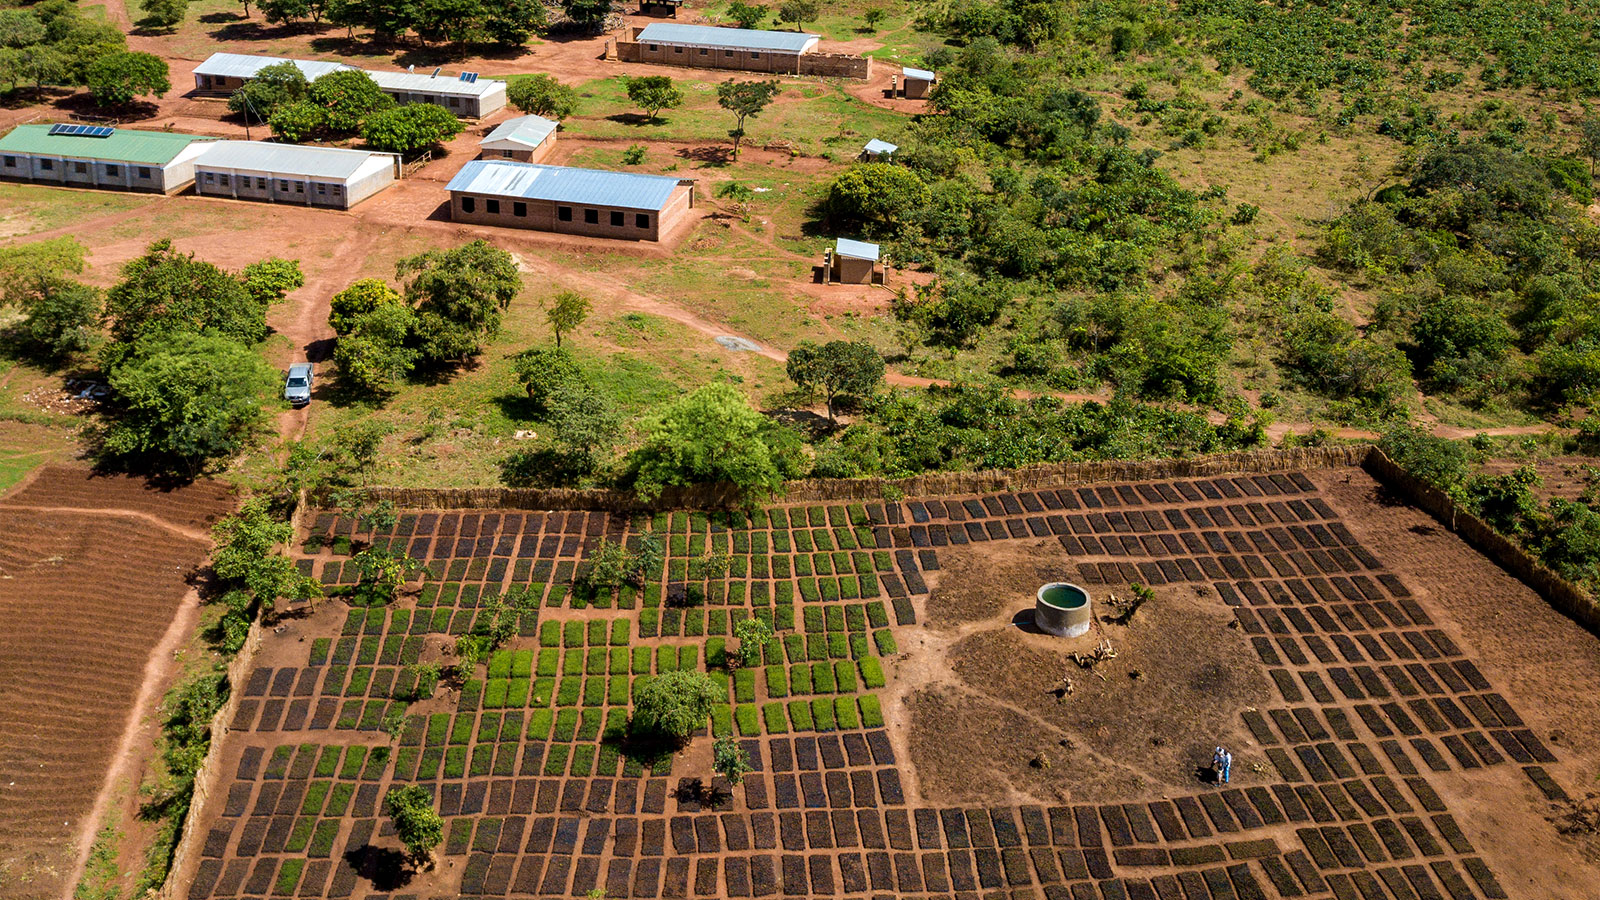 view of the reforestation projects